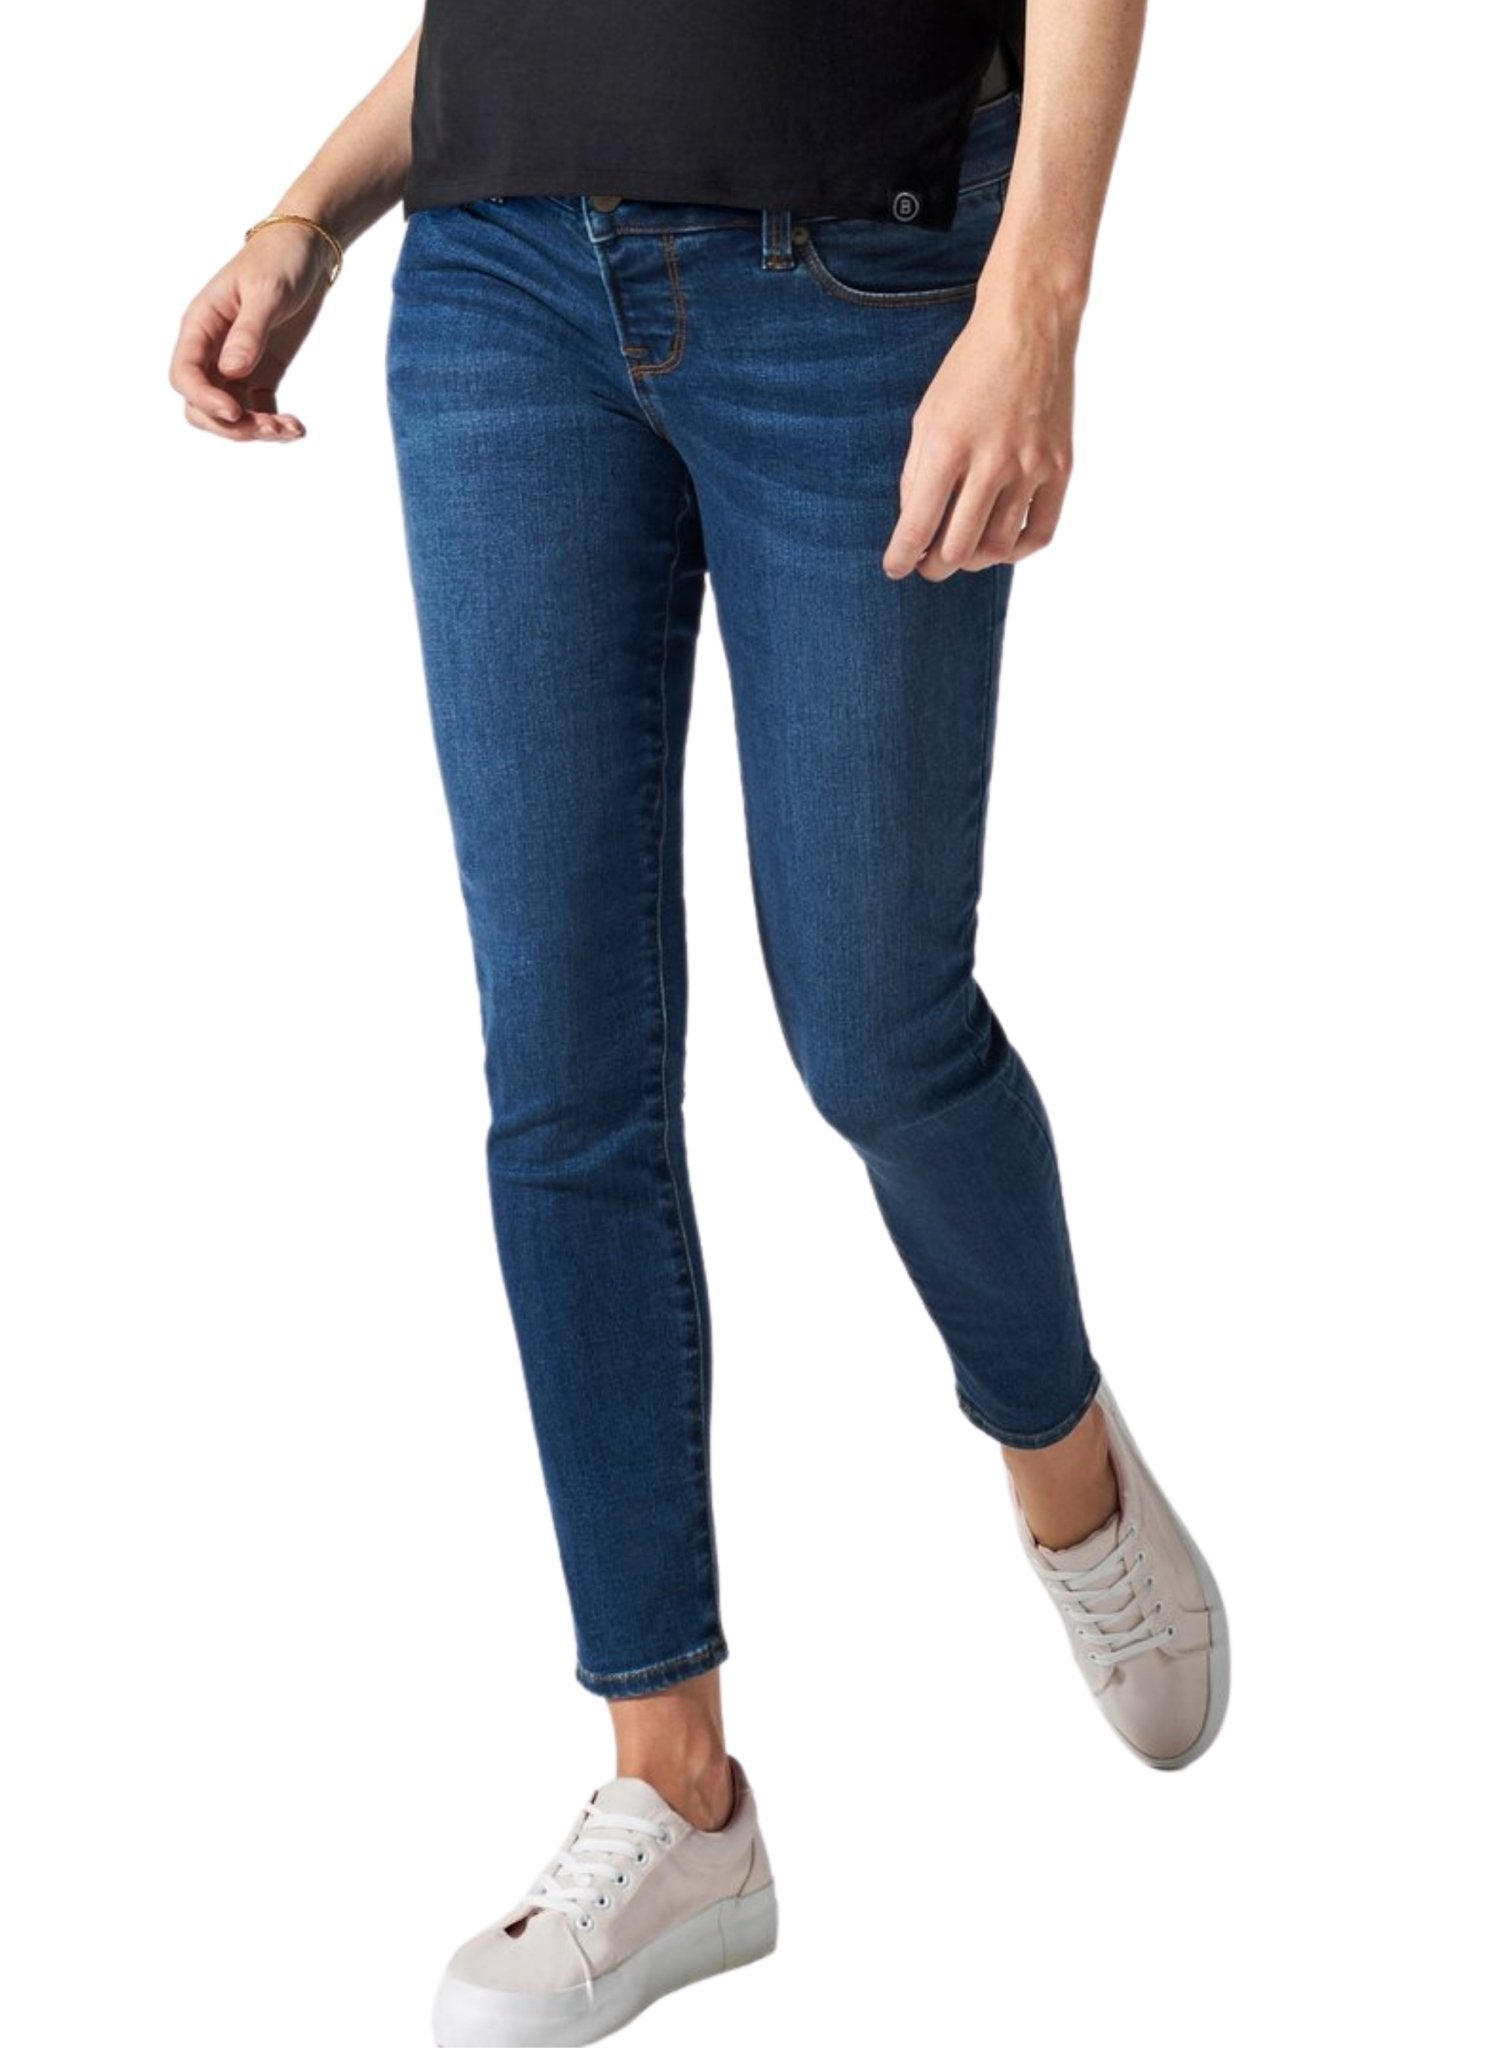 BLANQI Maternity Belly Support Skinny Jeans - Medium Wash - Mums and Bumps